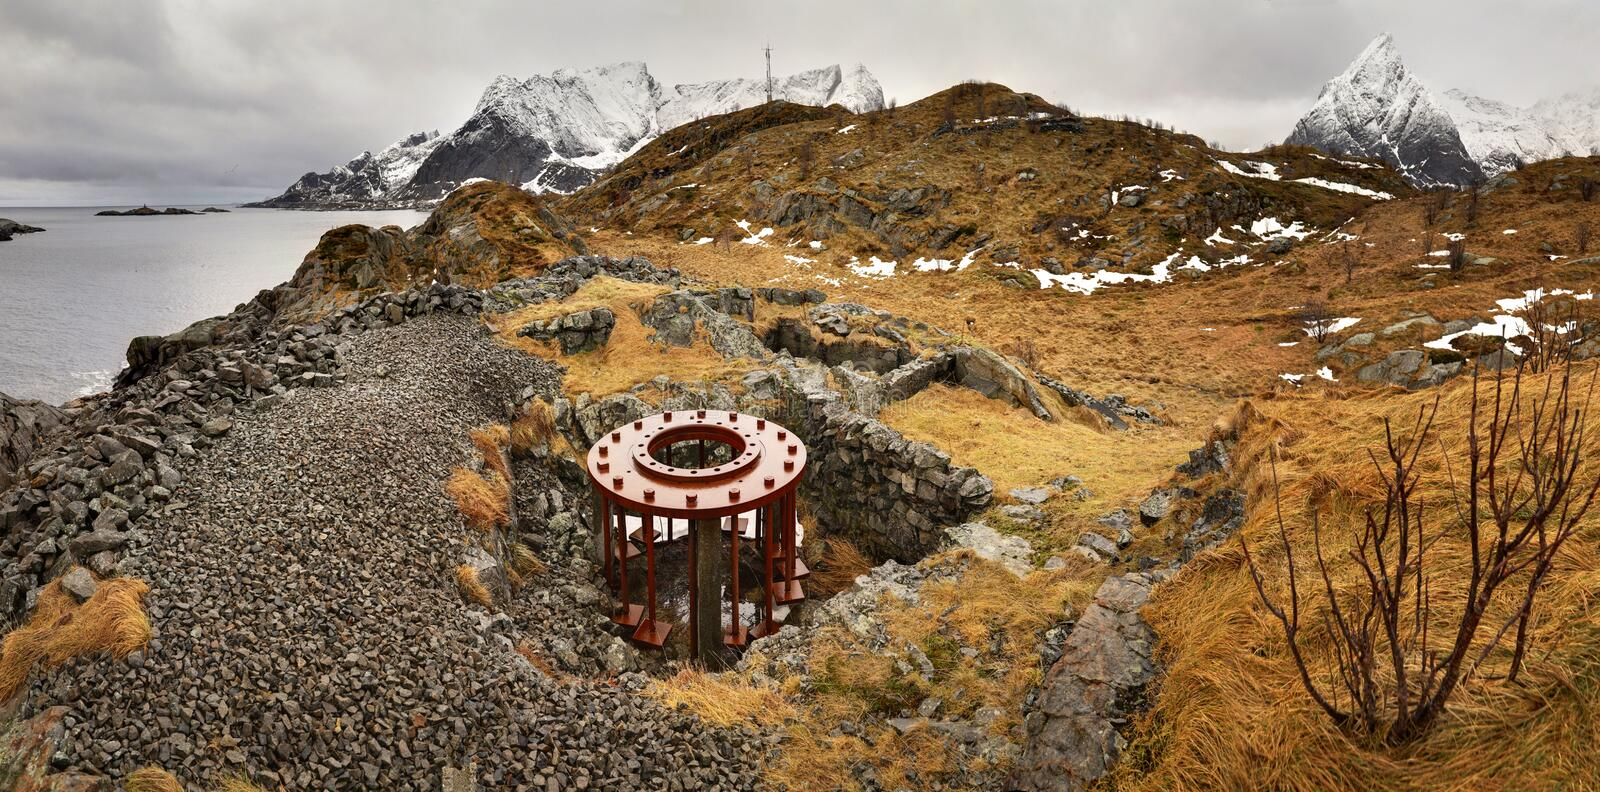 Abandoned german fortification with unfinished circle base for artillery gun from  WWII near Reine / Moskenes in Lofoten, Norway. One of the abandoned german stock photos